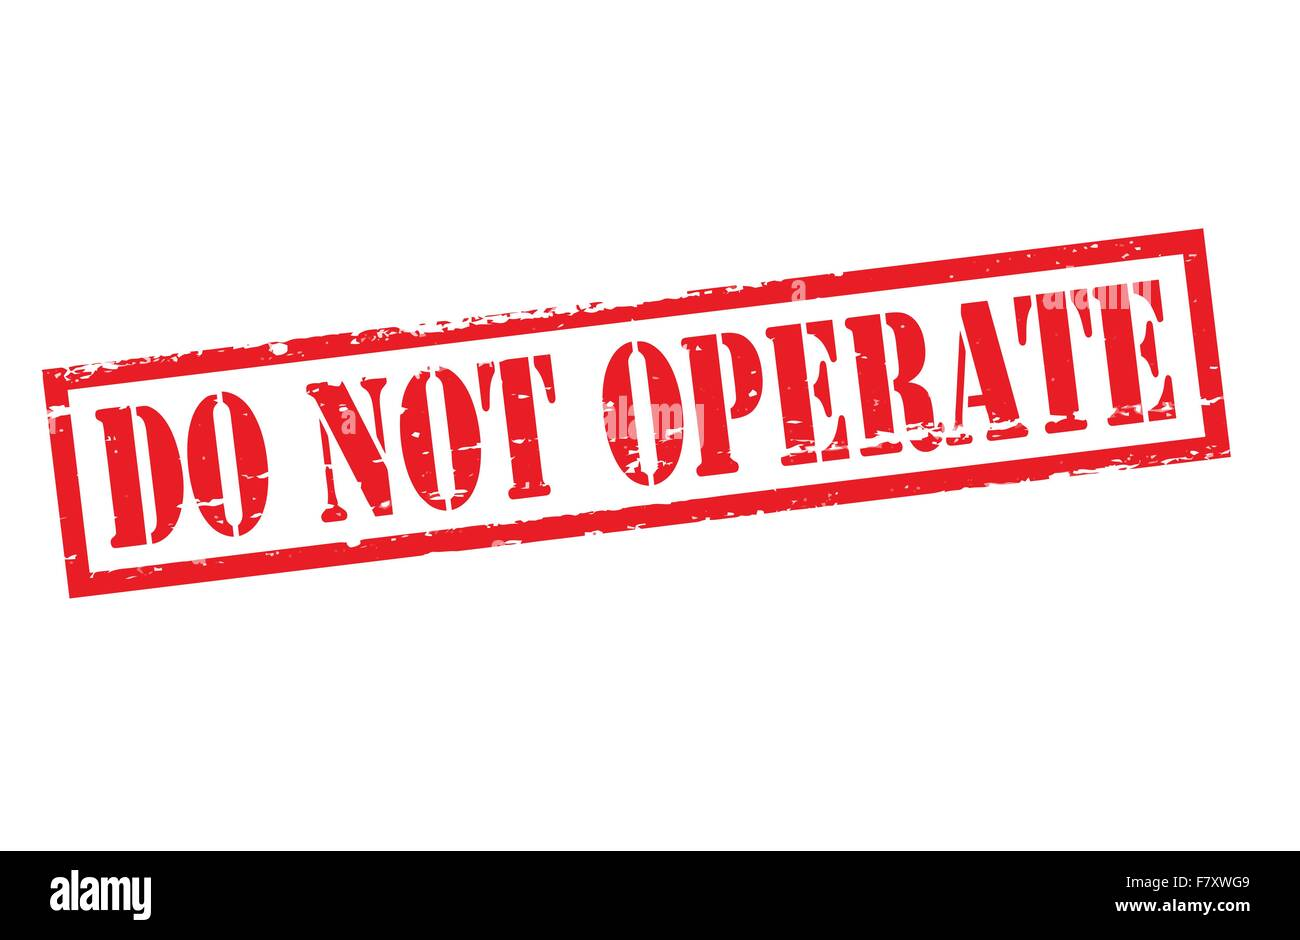 Do not operate - Stock Image